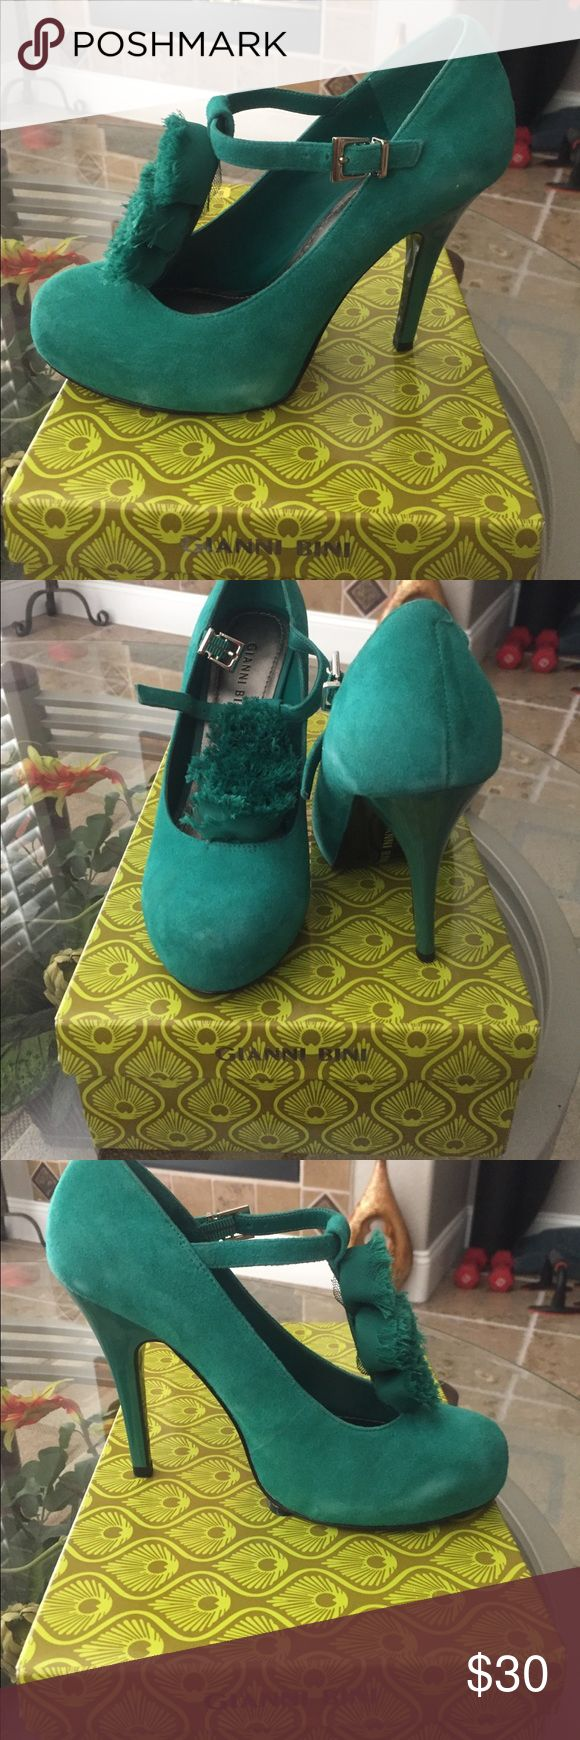 Cute Gianni Bini shoes Awesome sea green color. Suede shoes with cute details down the front of foot. Heel is patent leather. Same pretty green. Gianni Bini Shoes